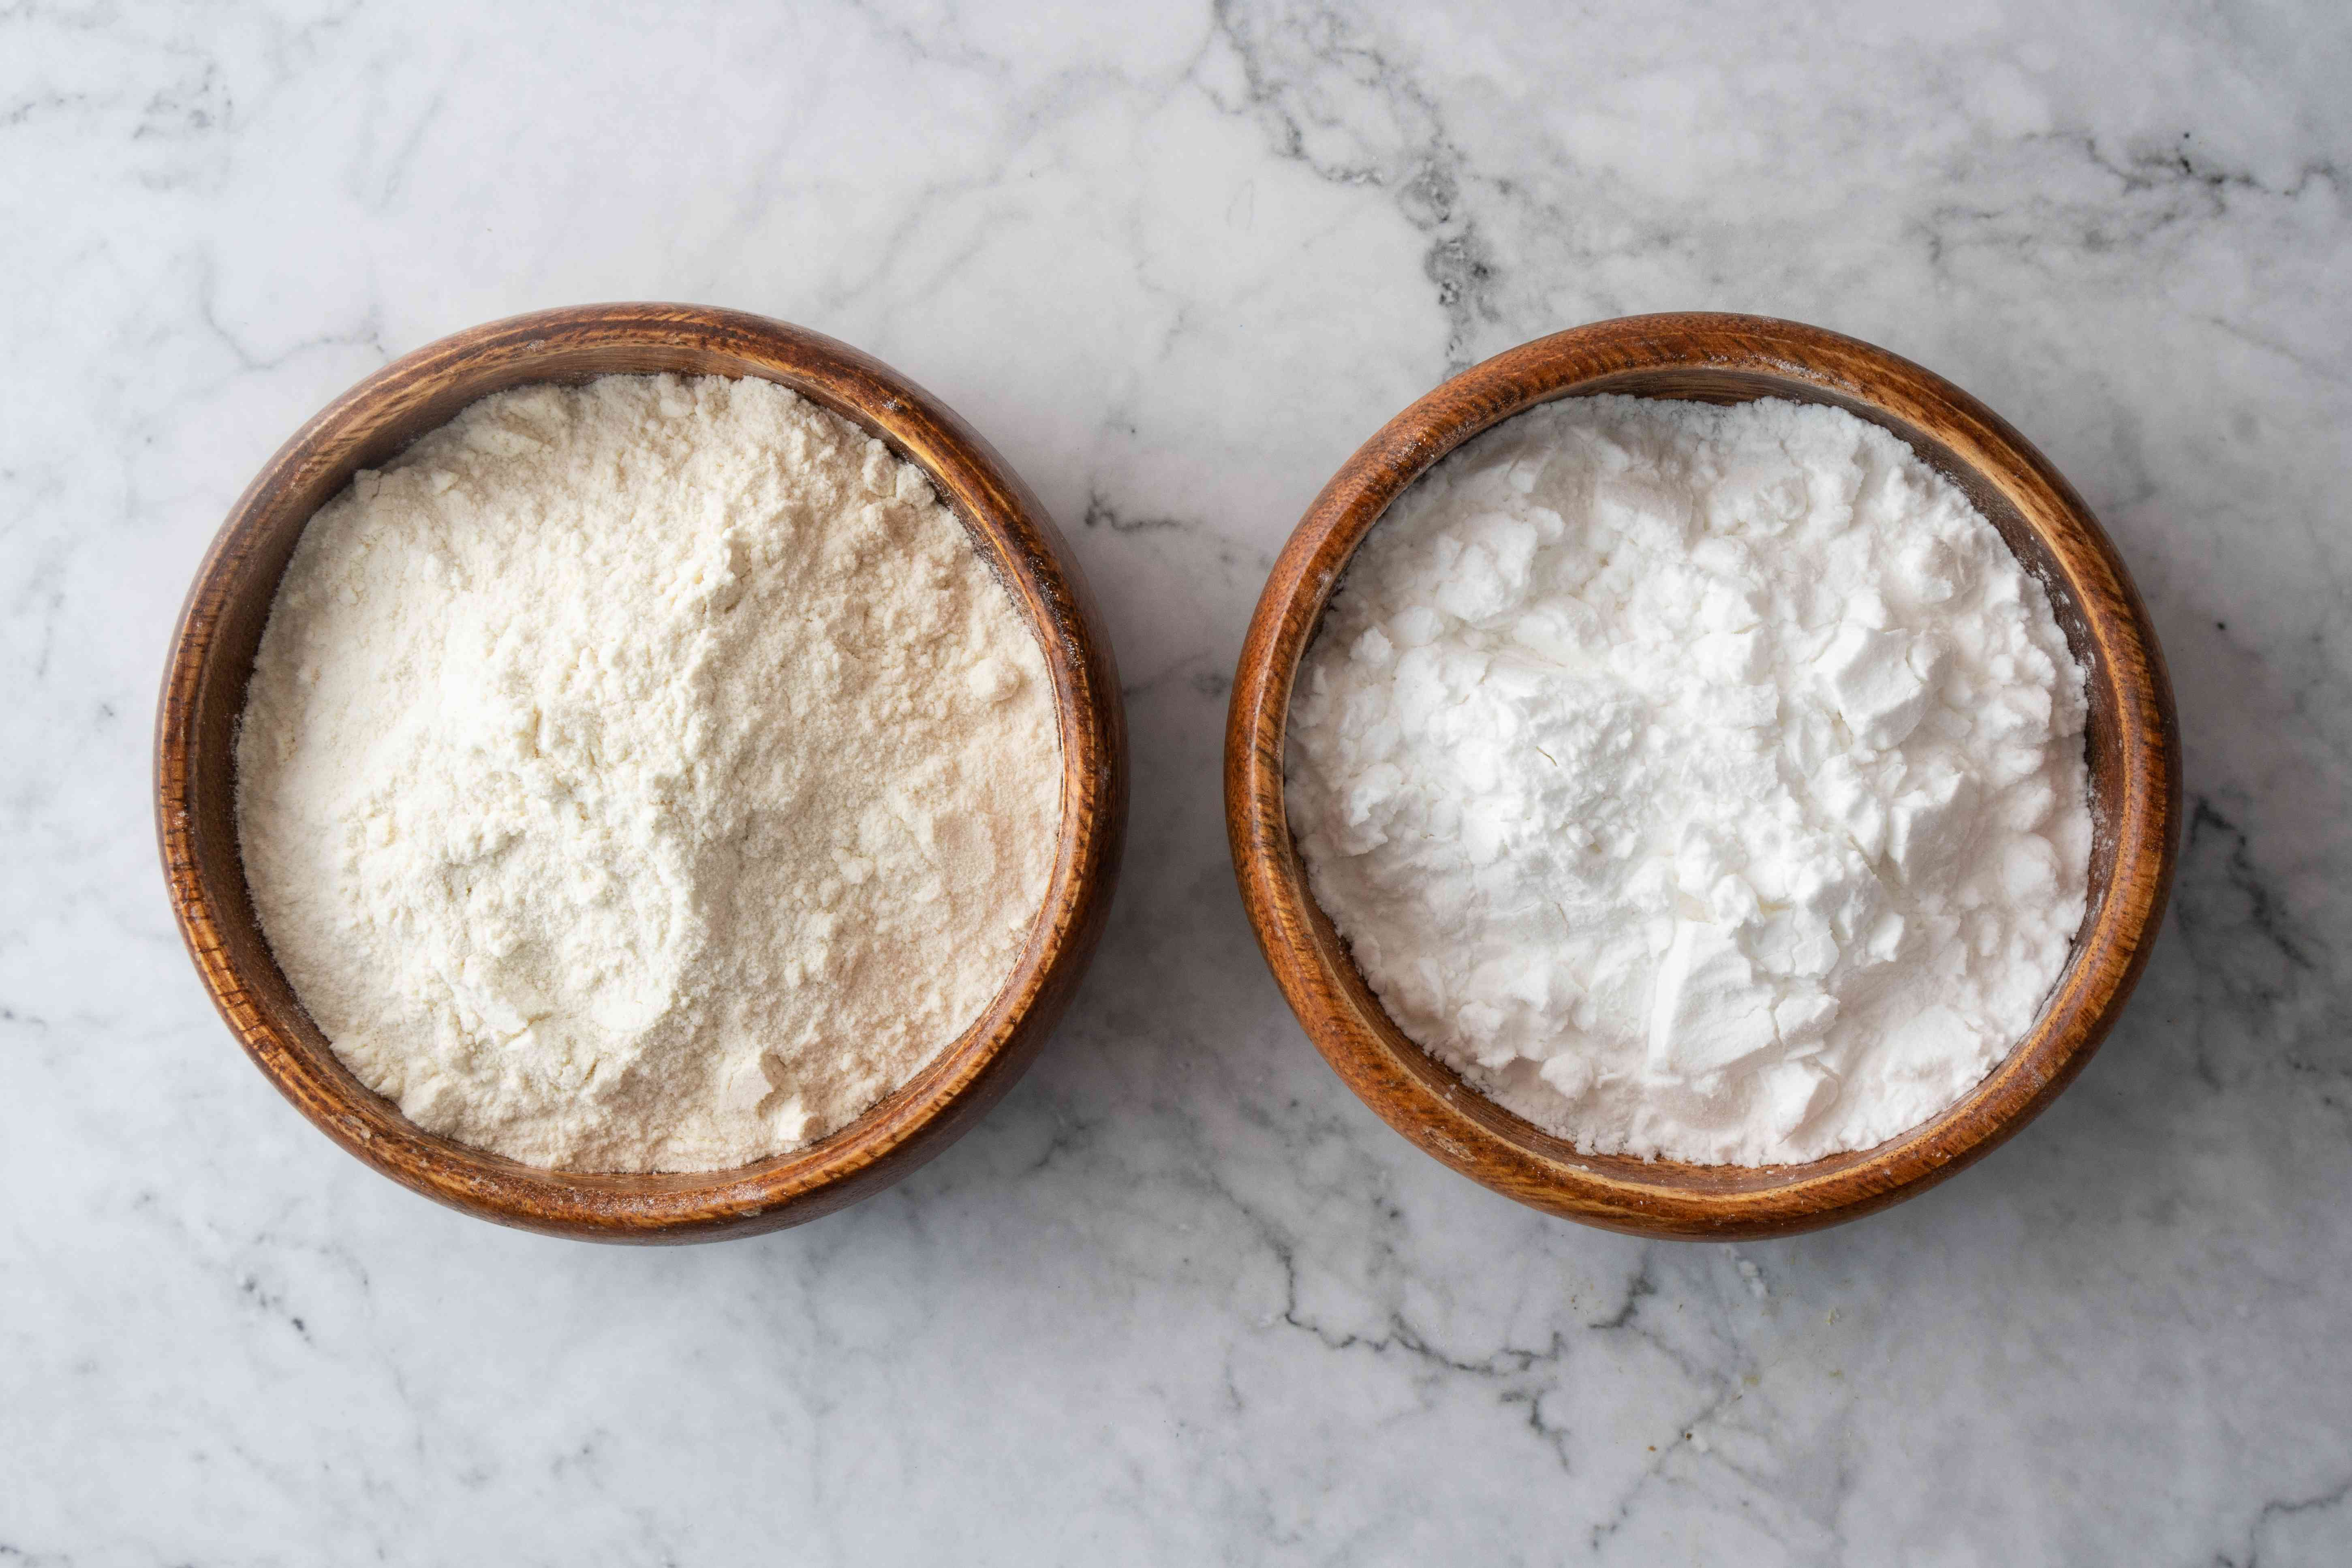 rice flour and corn starch in wooden bowls on white marble background